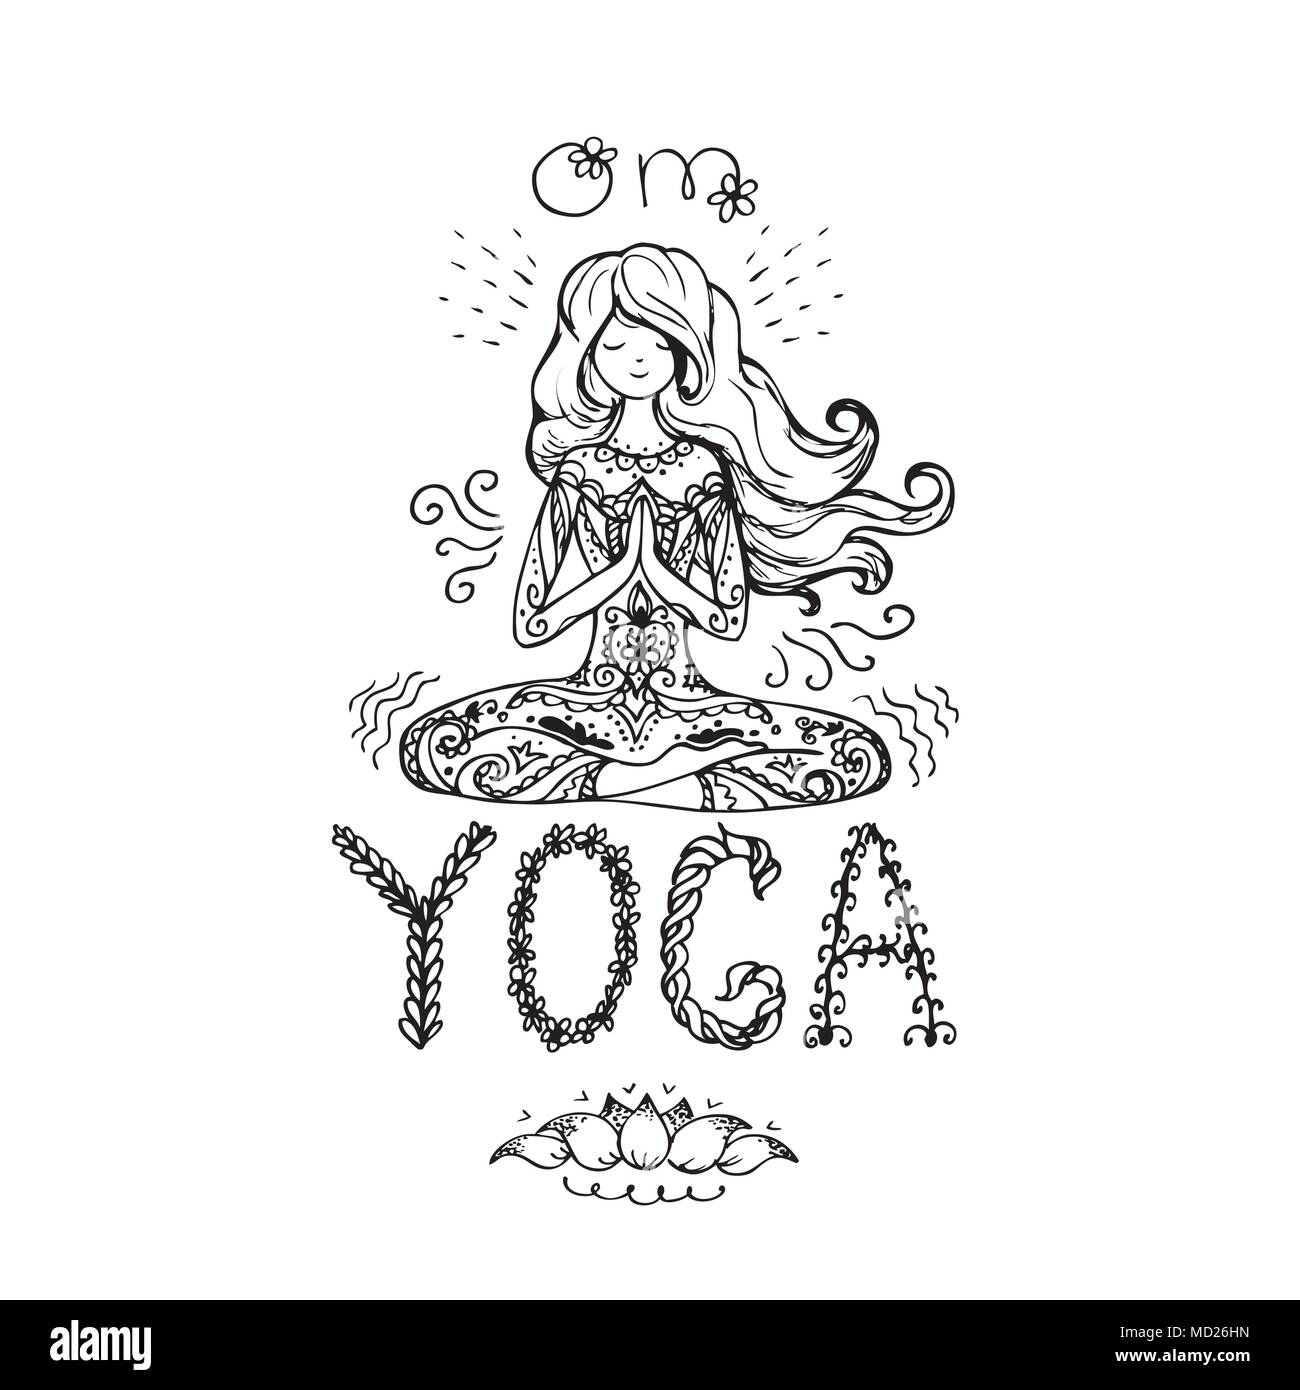 Girl in lotus yoga pose. Doodle hand drawn vector illustration in zentangle style.Logo, icon or card for healthy life, sport, fitness, pilates and yog - Stock Image